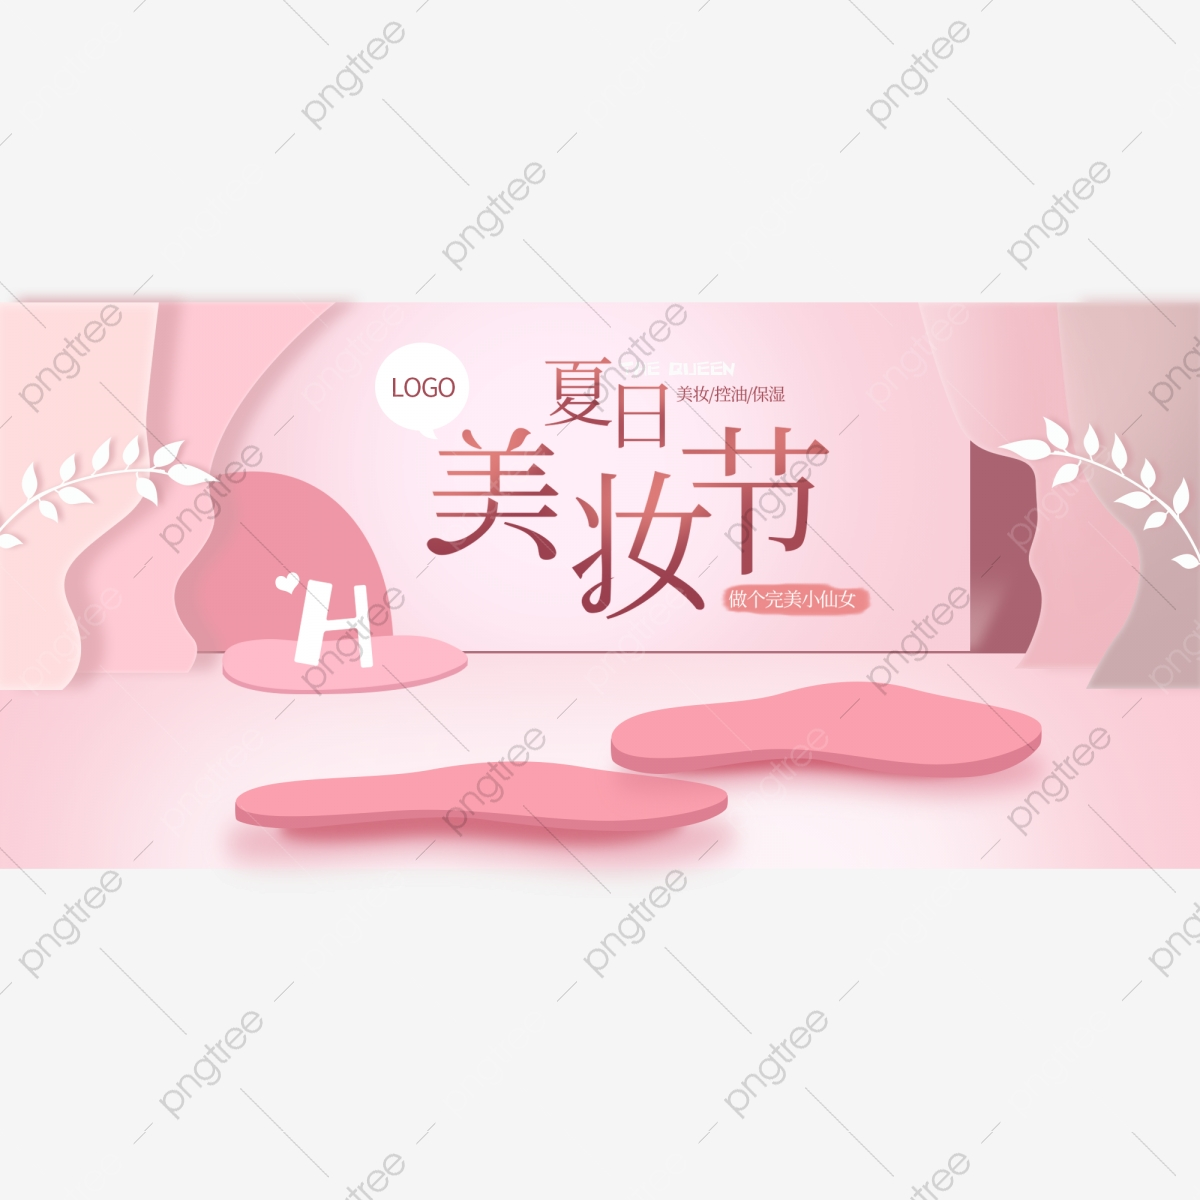 Summer Beauty Festival Banner Beauty Festival Banner Beauty Festival Poster Summer Beauty Festival Png Transparent Clipart Image And Psd File For Free Download